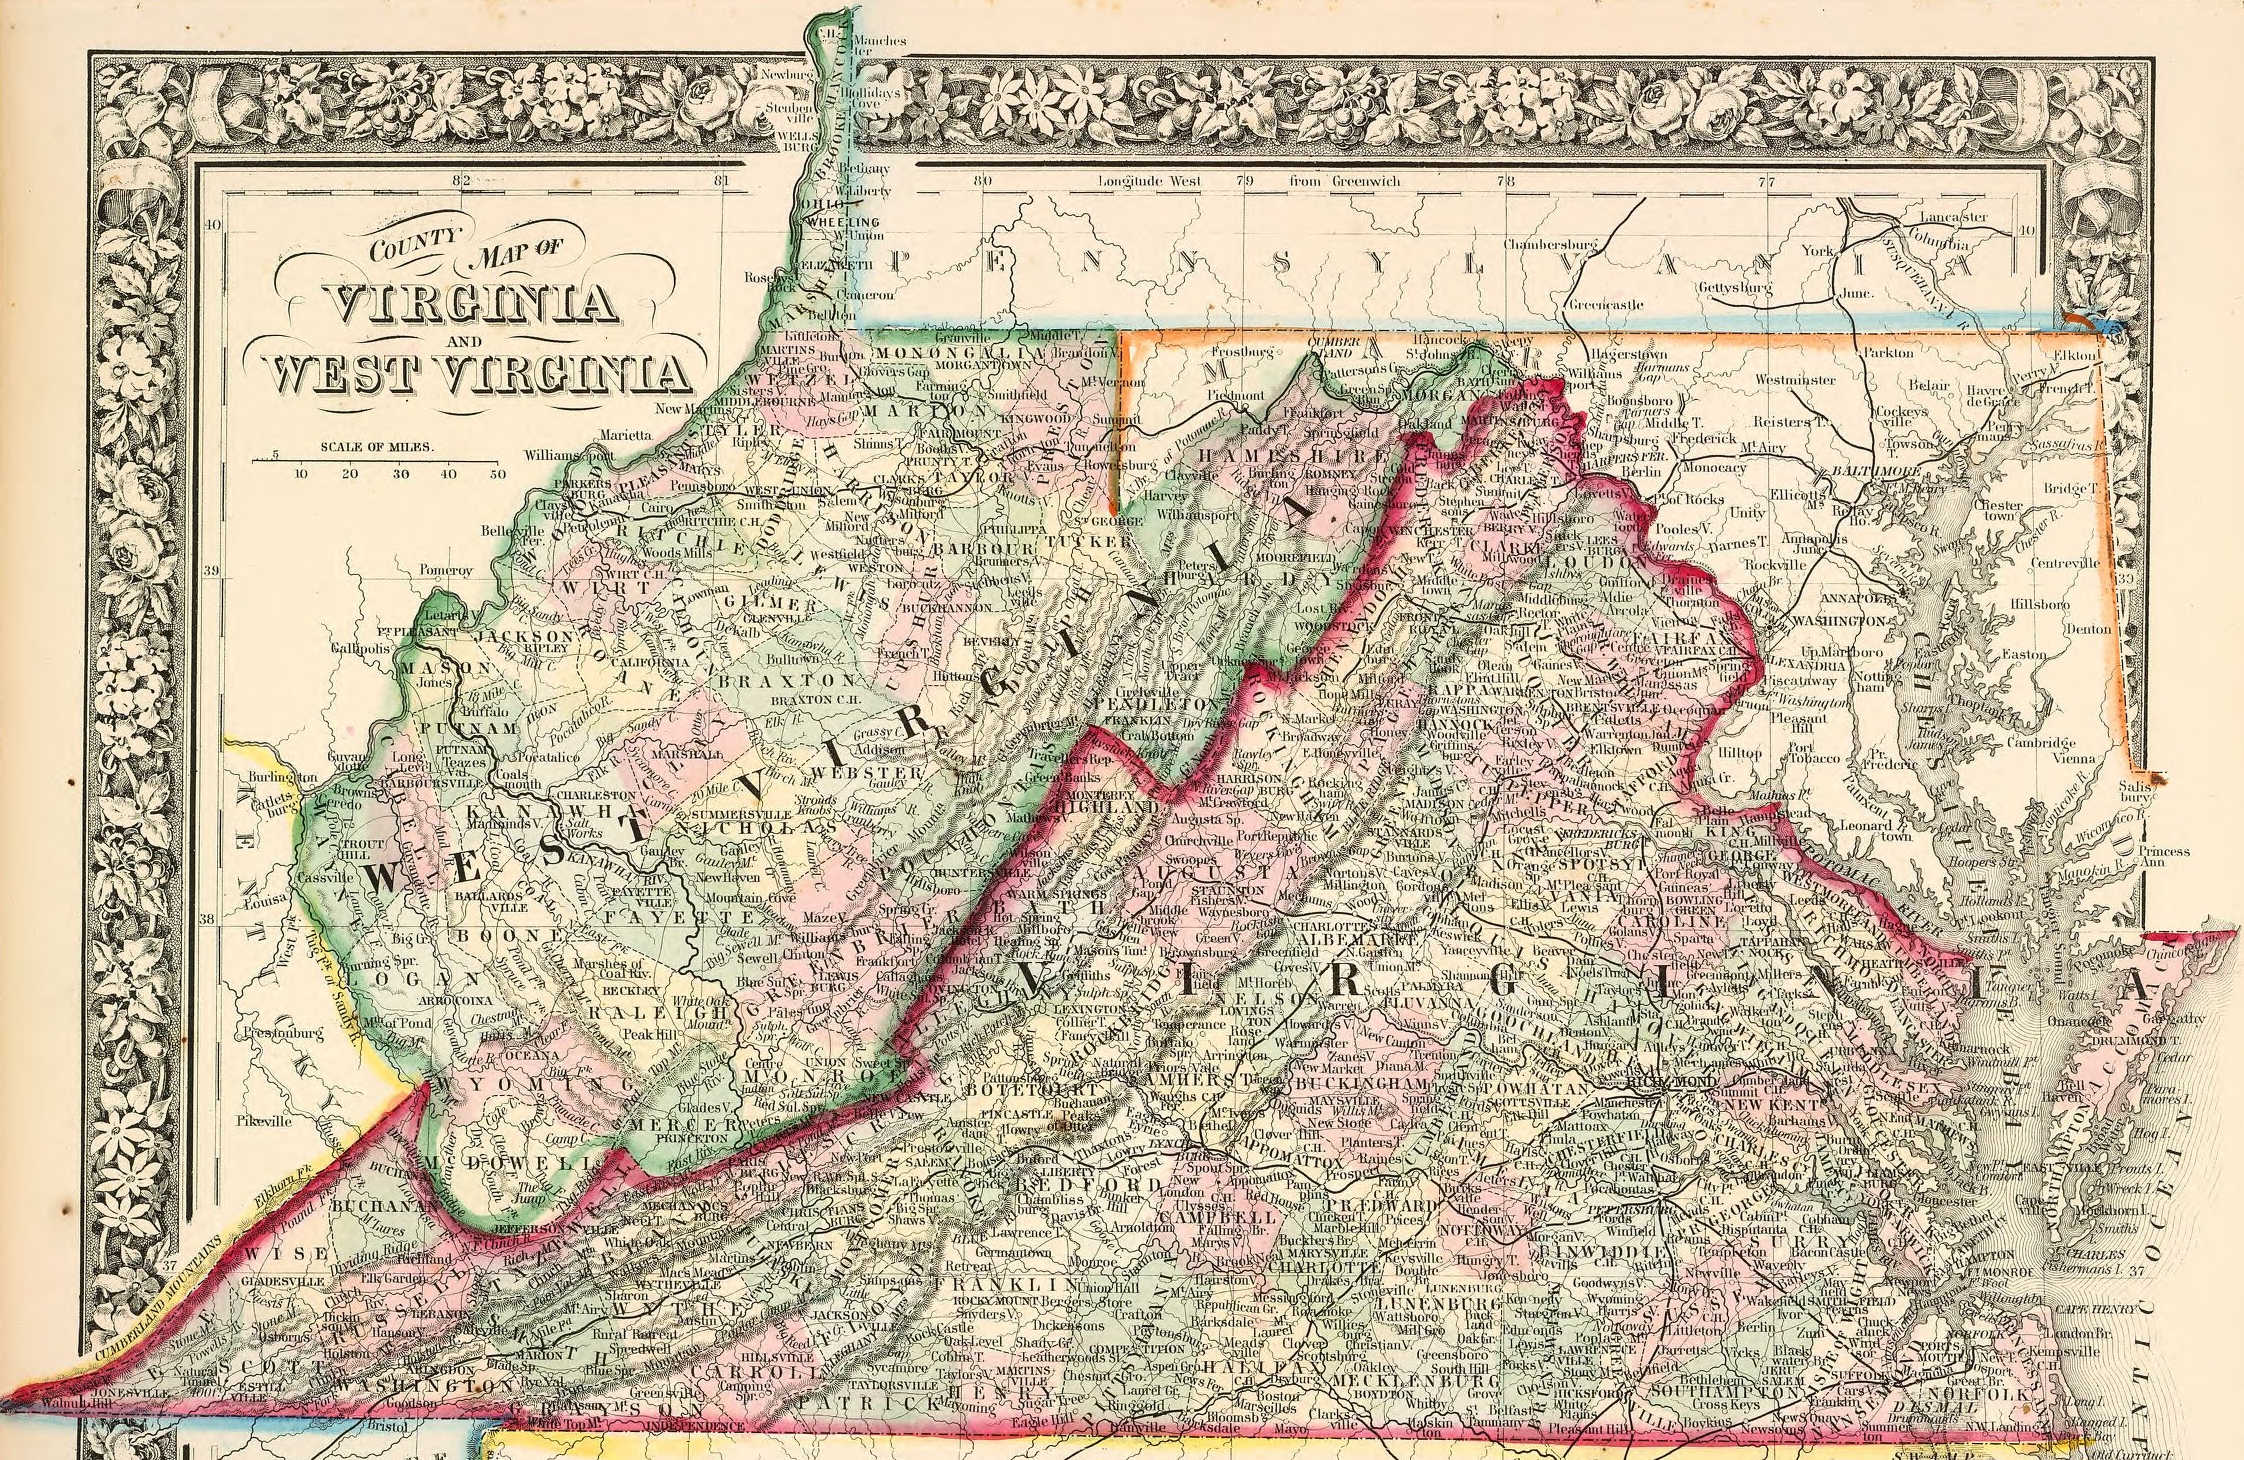 VirginiaWest Virginia Boundary - Wv map with cities and counties